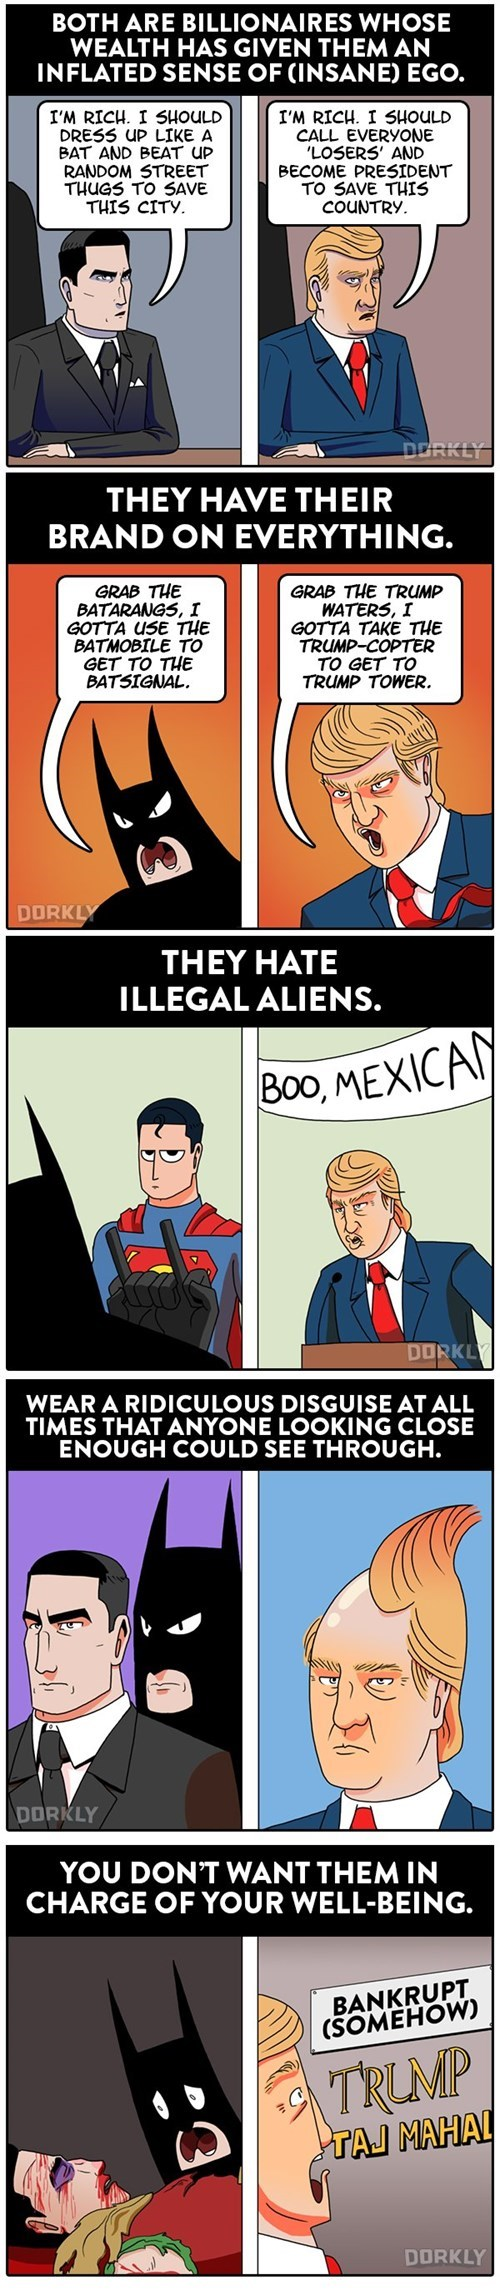 superheroes-batman-dc-donald-trump-comparison